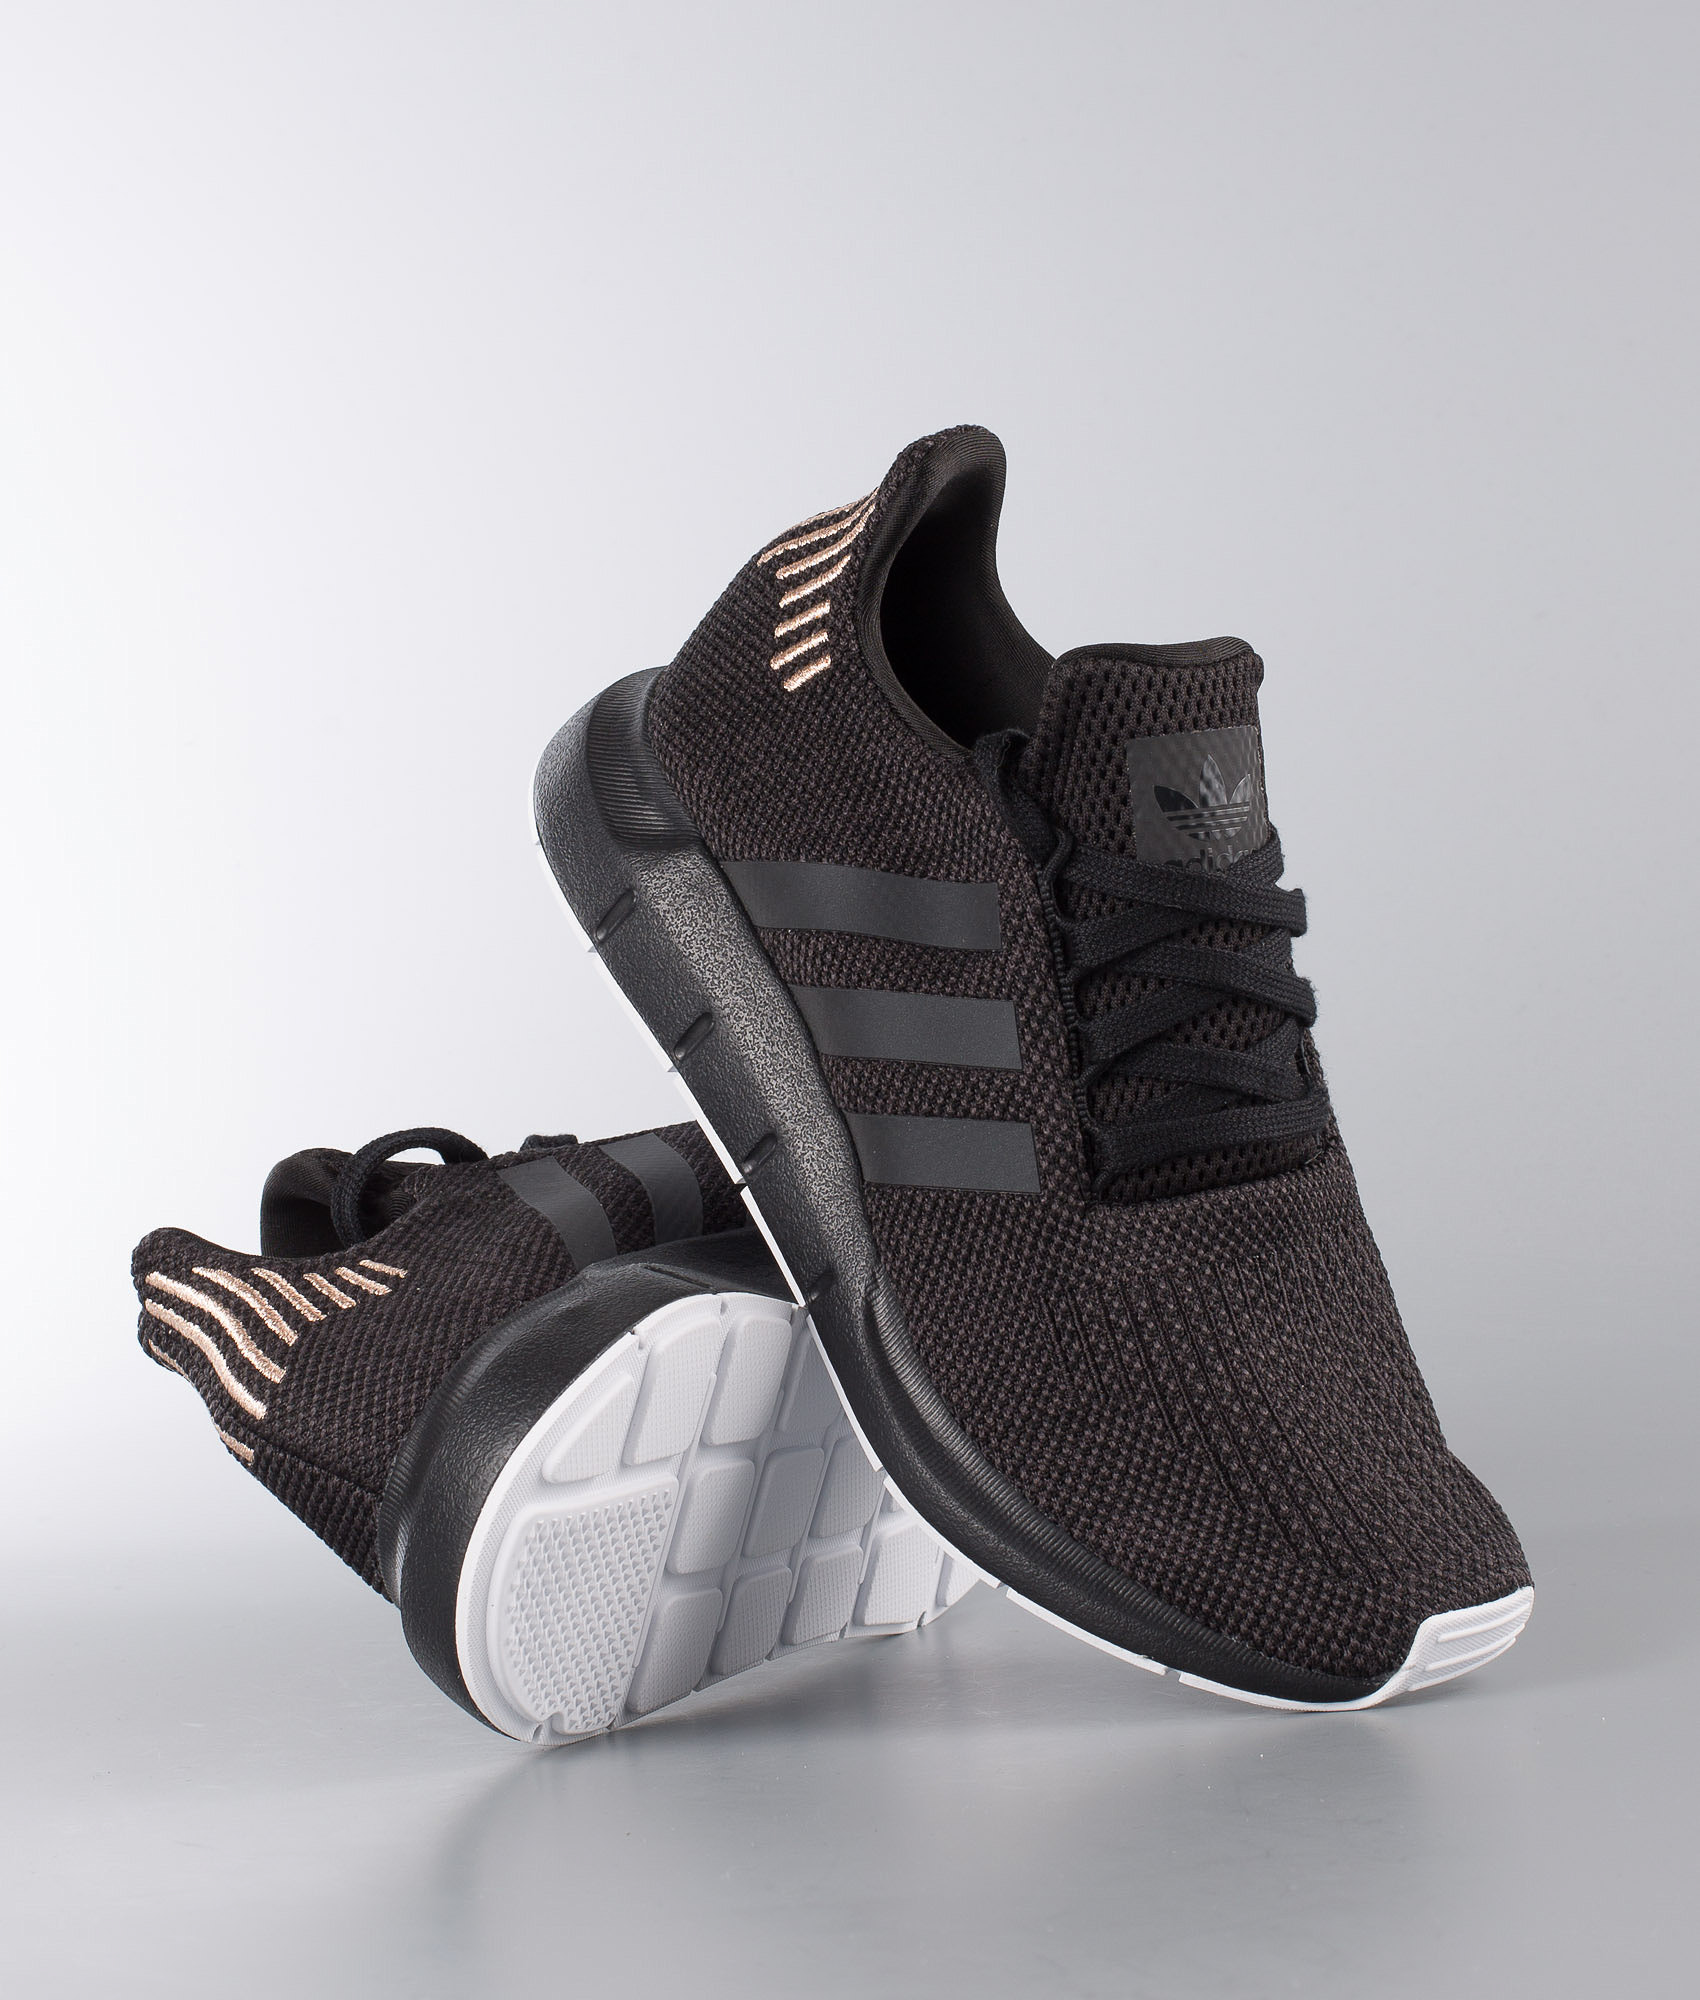 919370fcca75a9 Adidas Originals Swift Run W Shoes Core Black Carbon Ftwr White ...